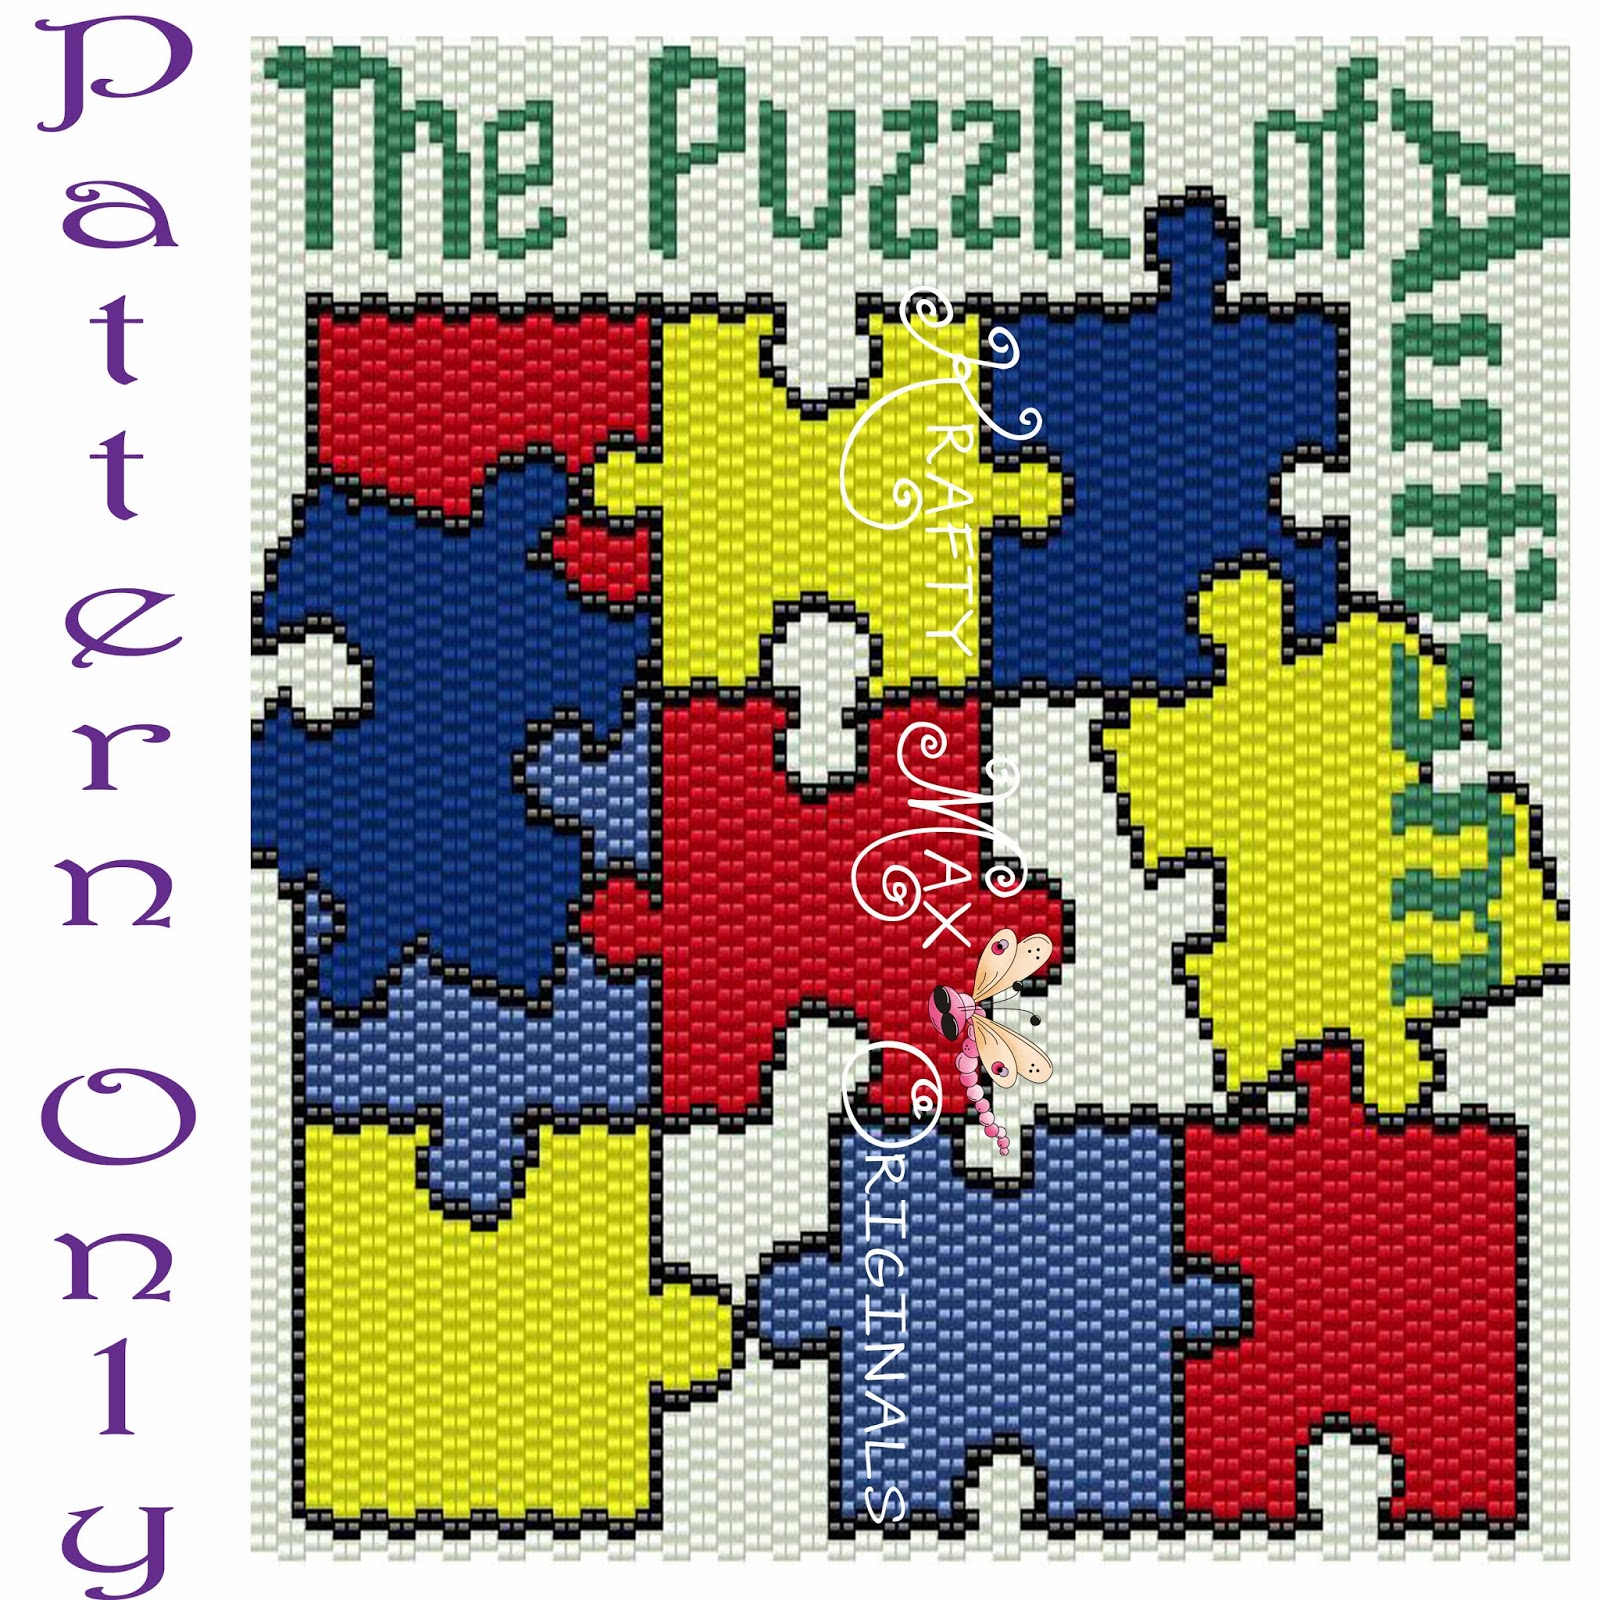 http://www.artfire.com/ext/shop/product_view/KraftyMax/8228831/the_puzzle_of_autism_-_pattern_only_-_krafty_max_original_design/design/patterns/other